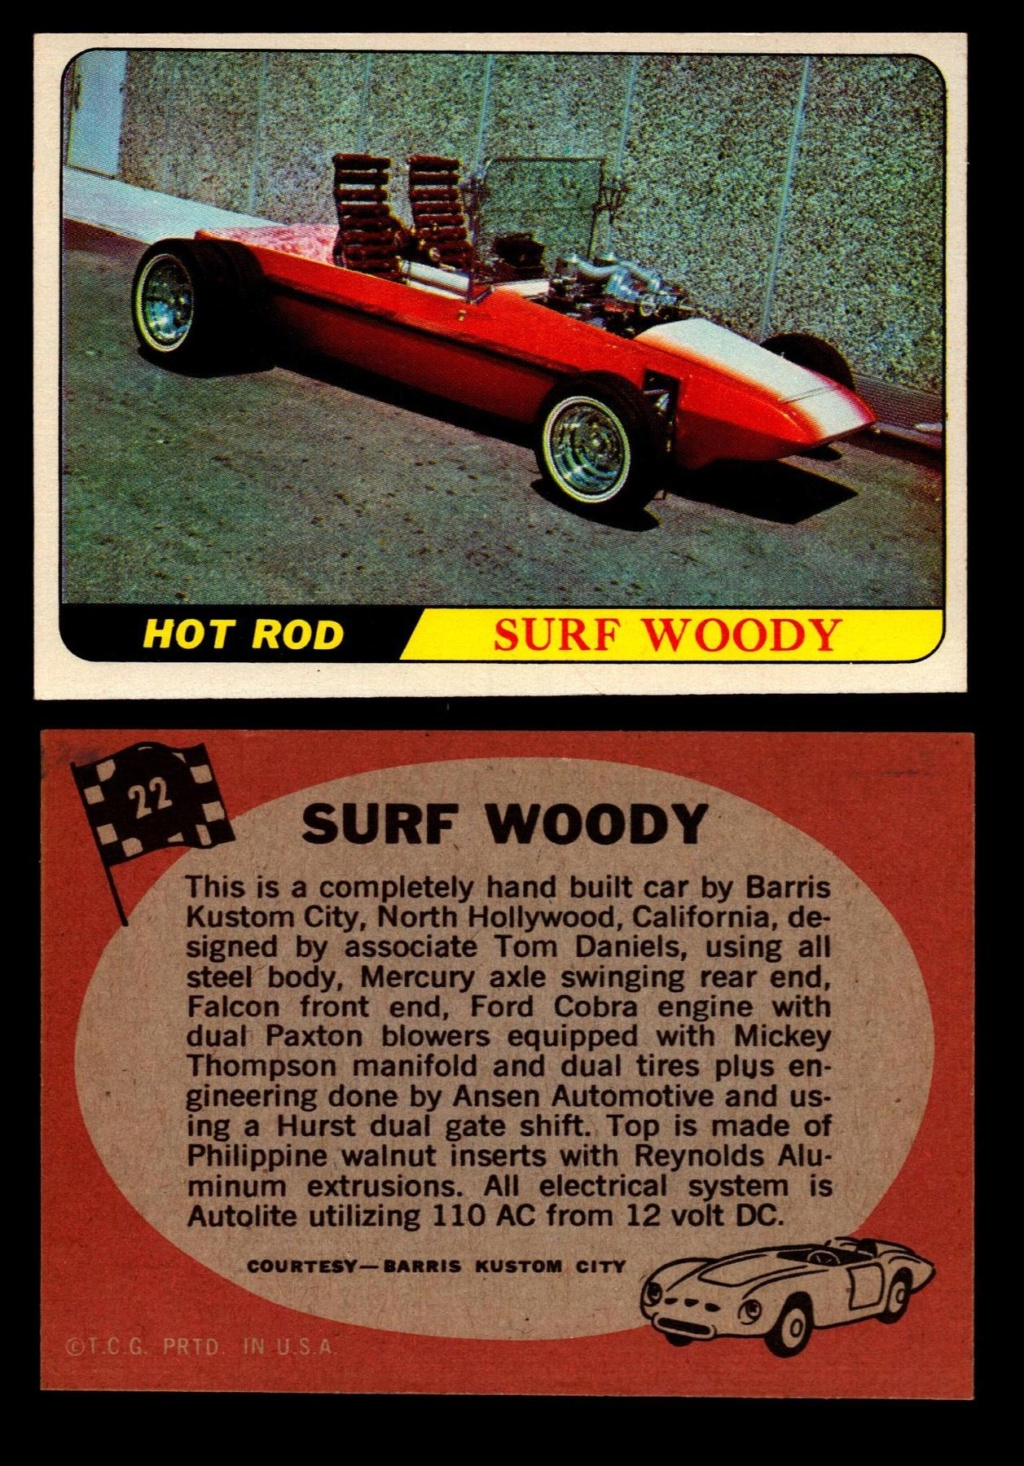 Hot Rods Topps - Vintage Trading Cards 1968 - Custom car - Dragster - Racer - Dream car - Barris Kustom City - Ed Roth Darrill Starbird, Gene Winfield, Bill Cuchenberry 22_13610